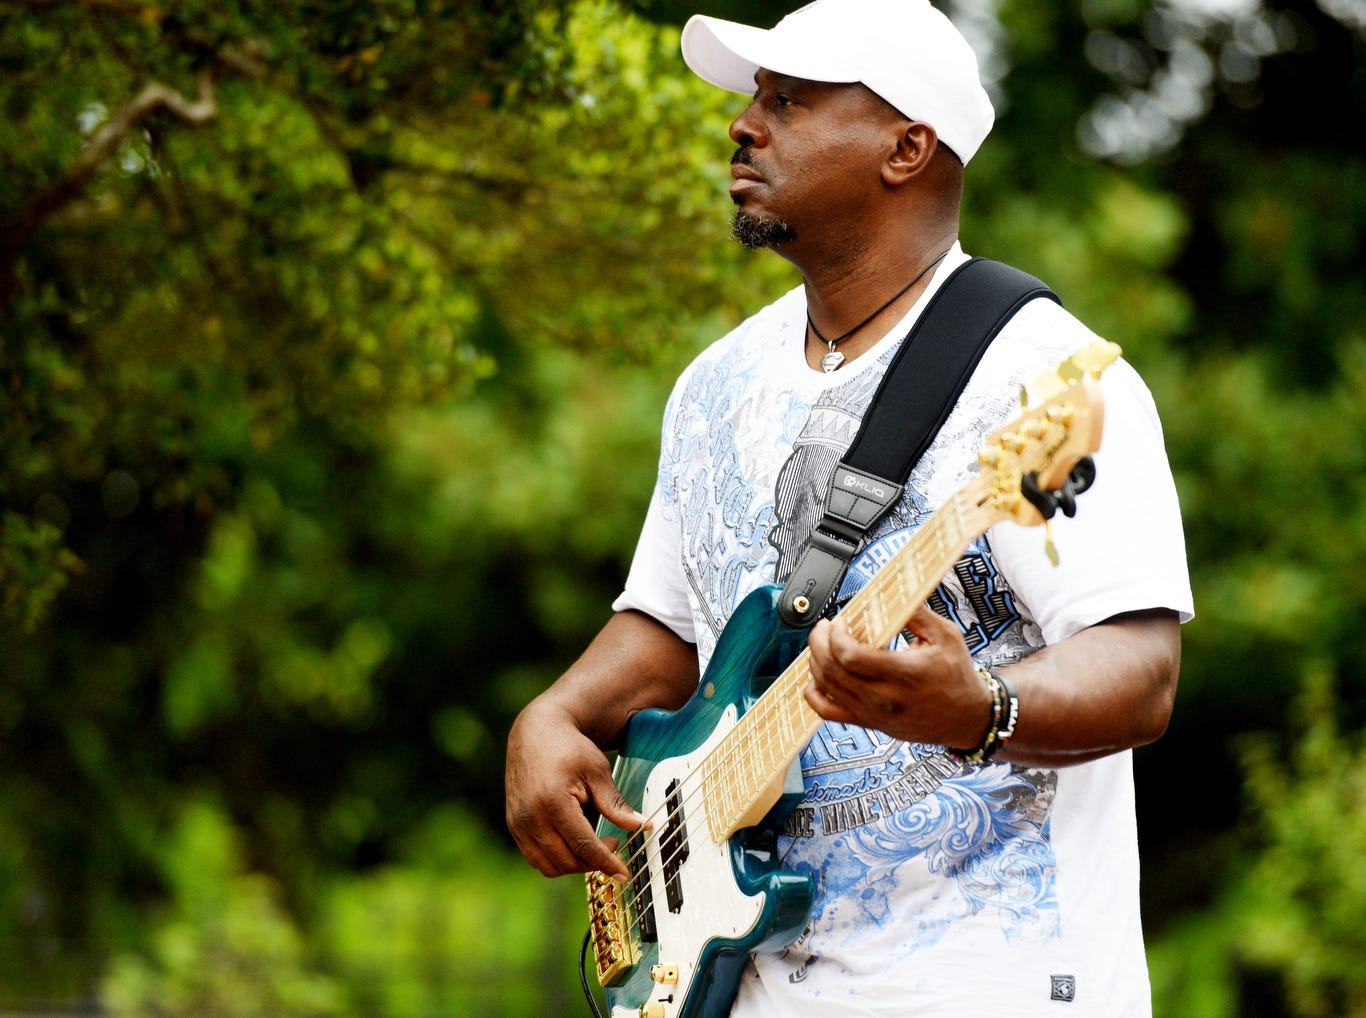 Jam on the Red concert series began with the band Total Choice Thursday evening April 11, 2019 at the Shreveport Aquarium.